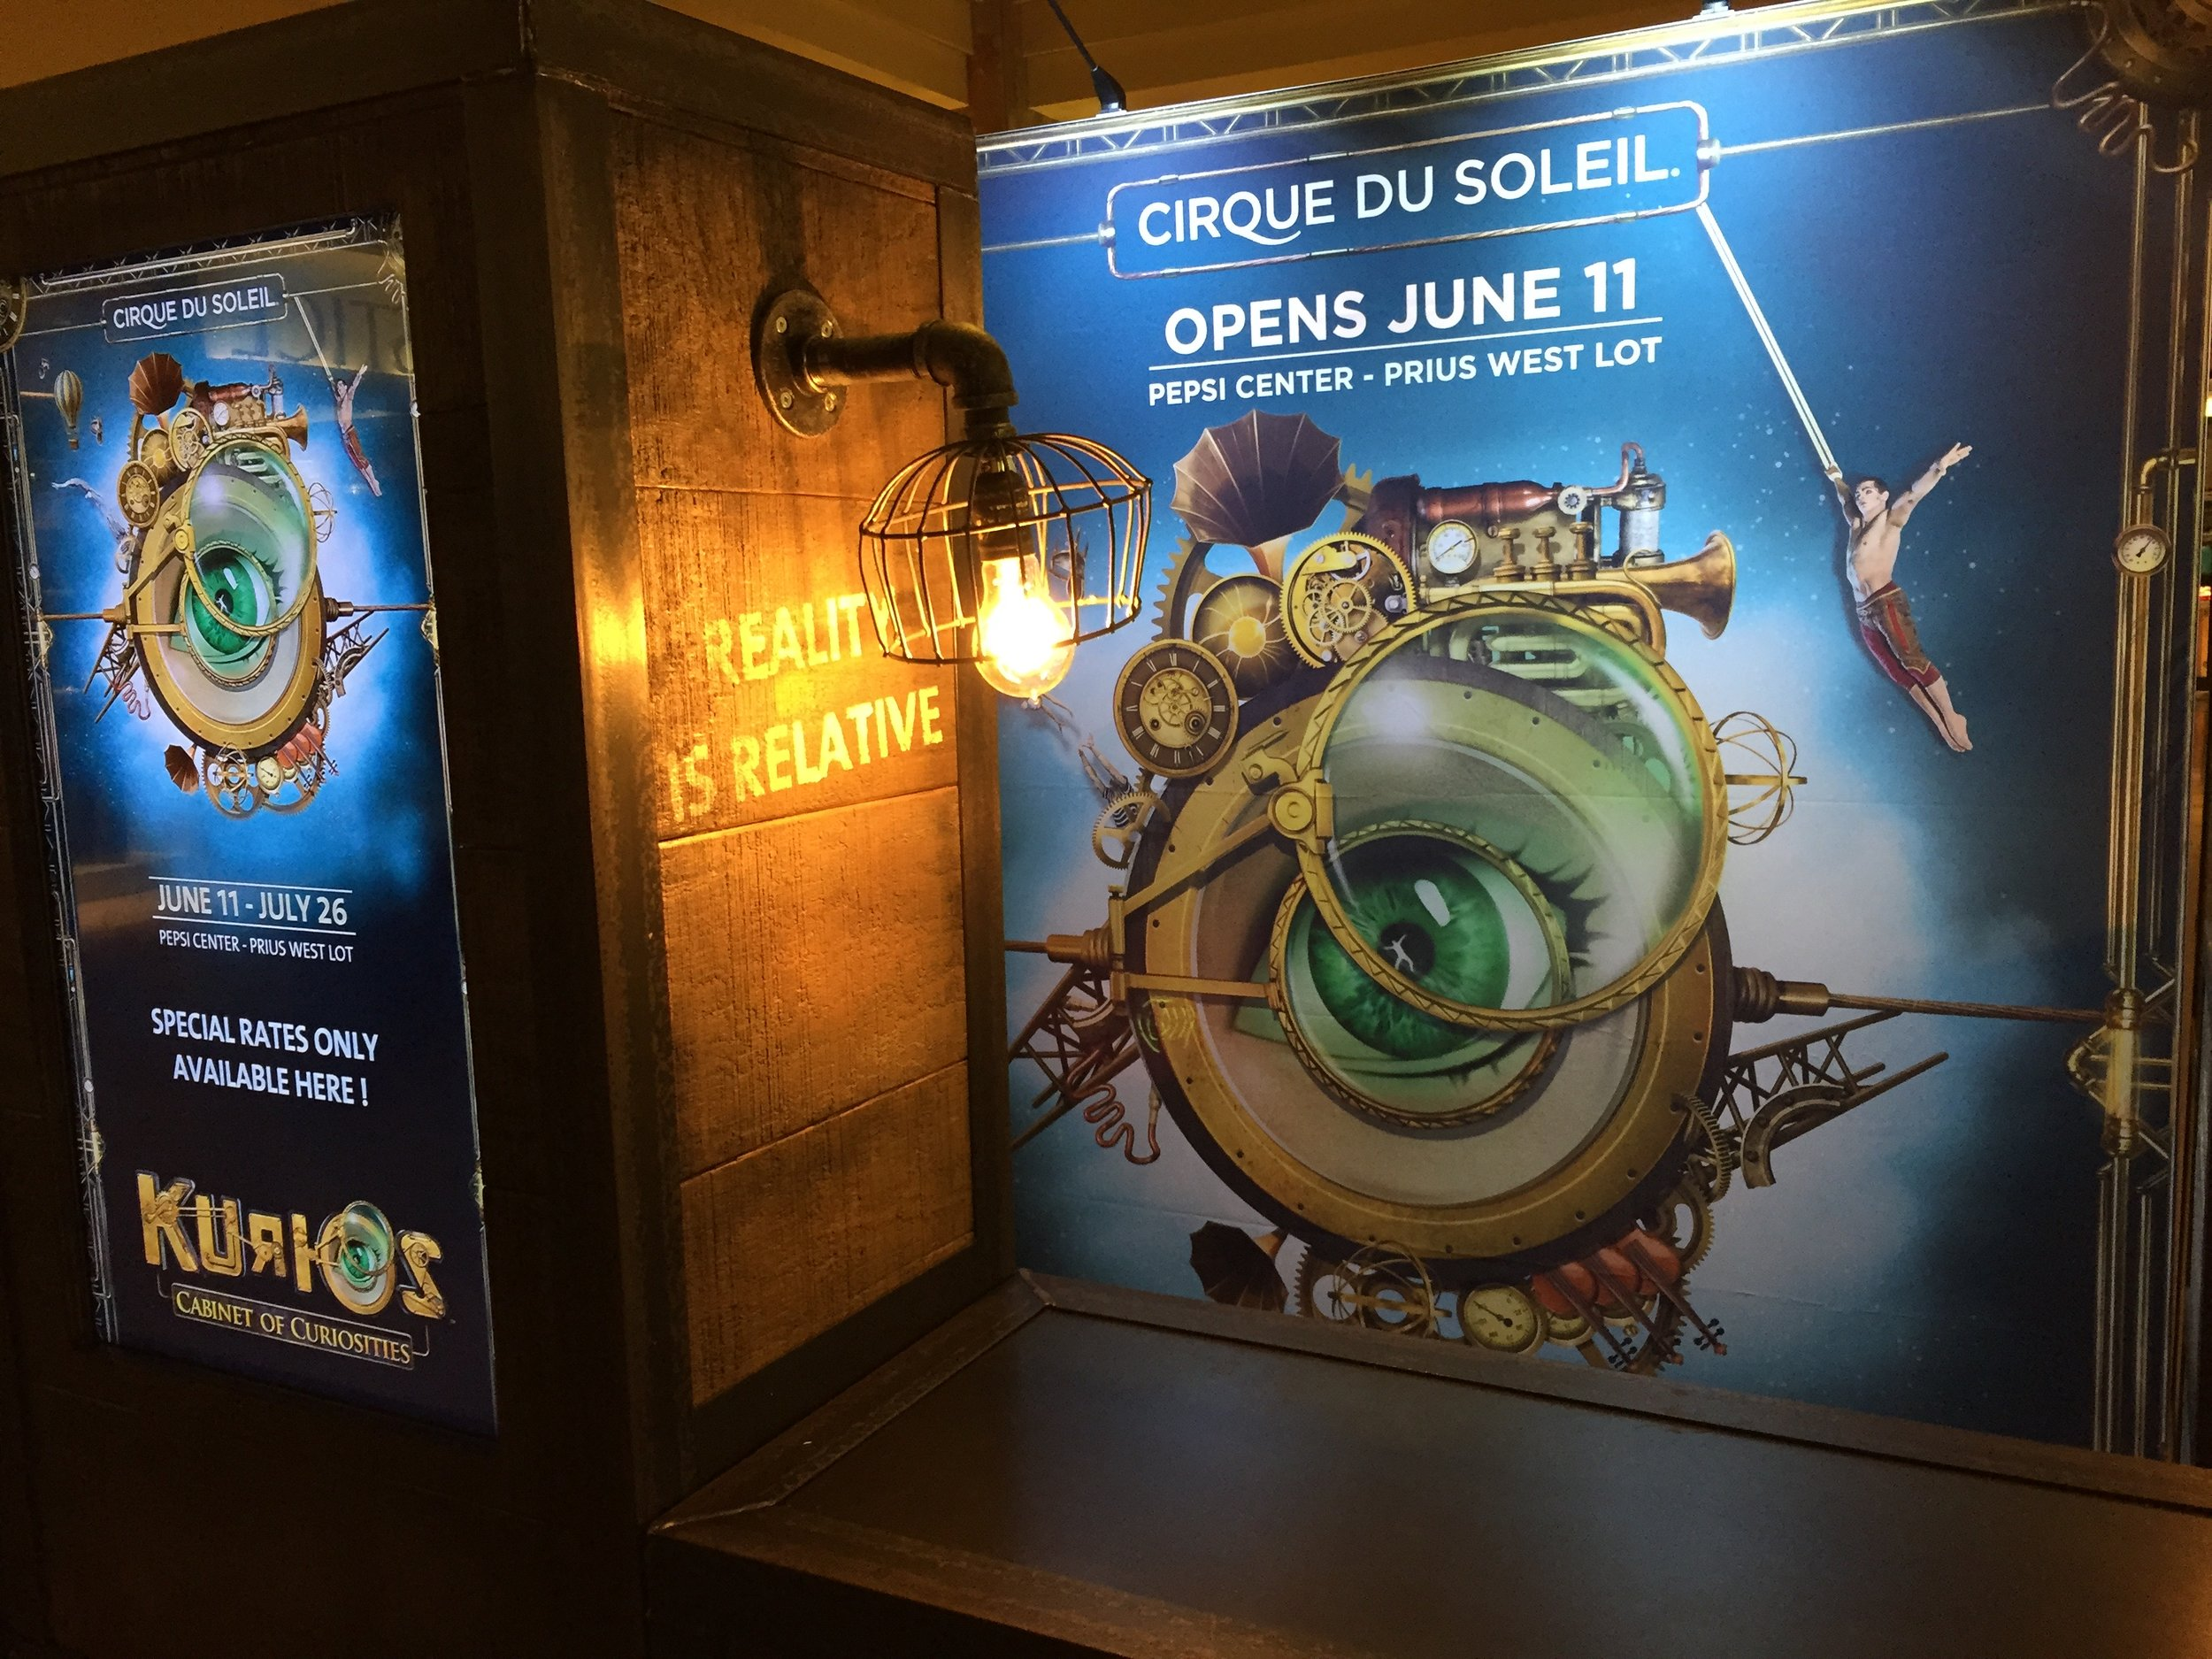 KURIOS (CIRQUE DU SOLEIL)    ///   MONTREAL, CHICAGO, SAN FRANCISCO, SEATTLE, HOUSTON, LOS ANGELES, MIAMI, VANCOUVER, WINNIPEG, EDMONTON